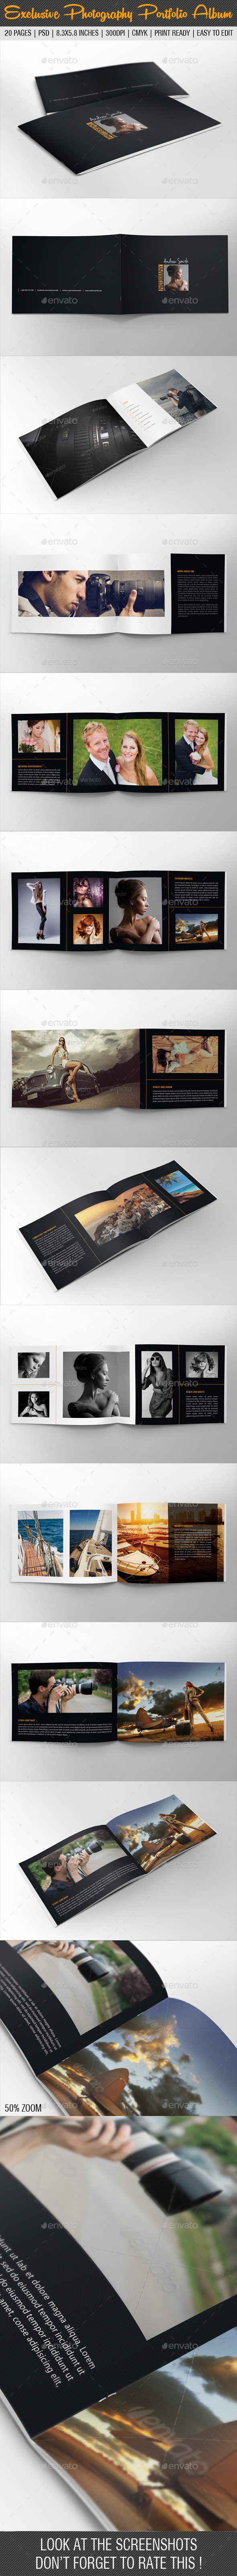 GraphicRiver Exclusive Photography Portfolio Album 07 9658725